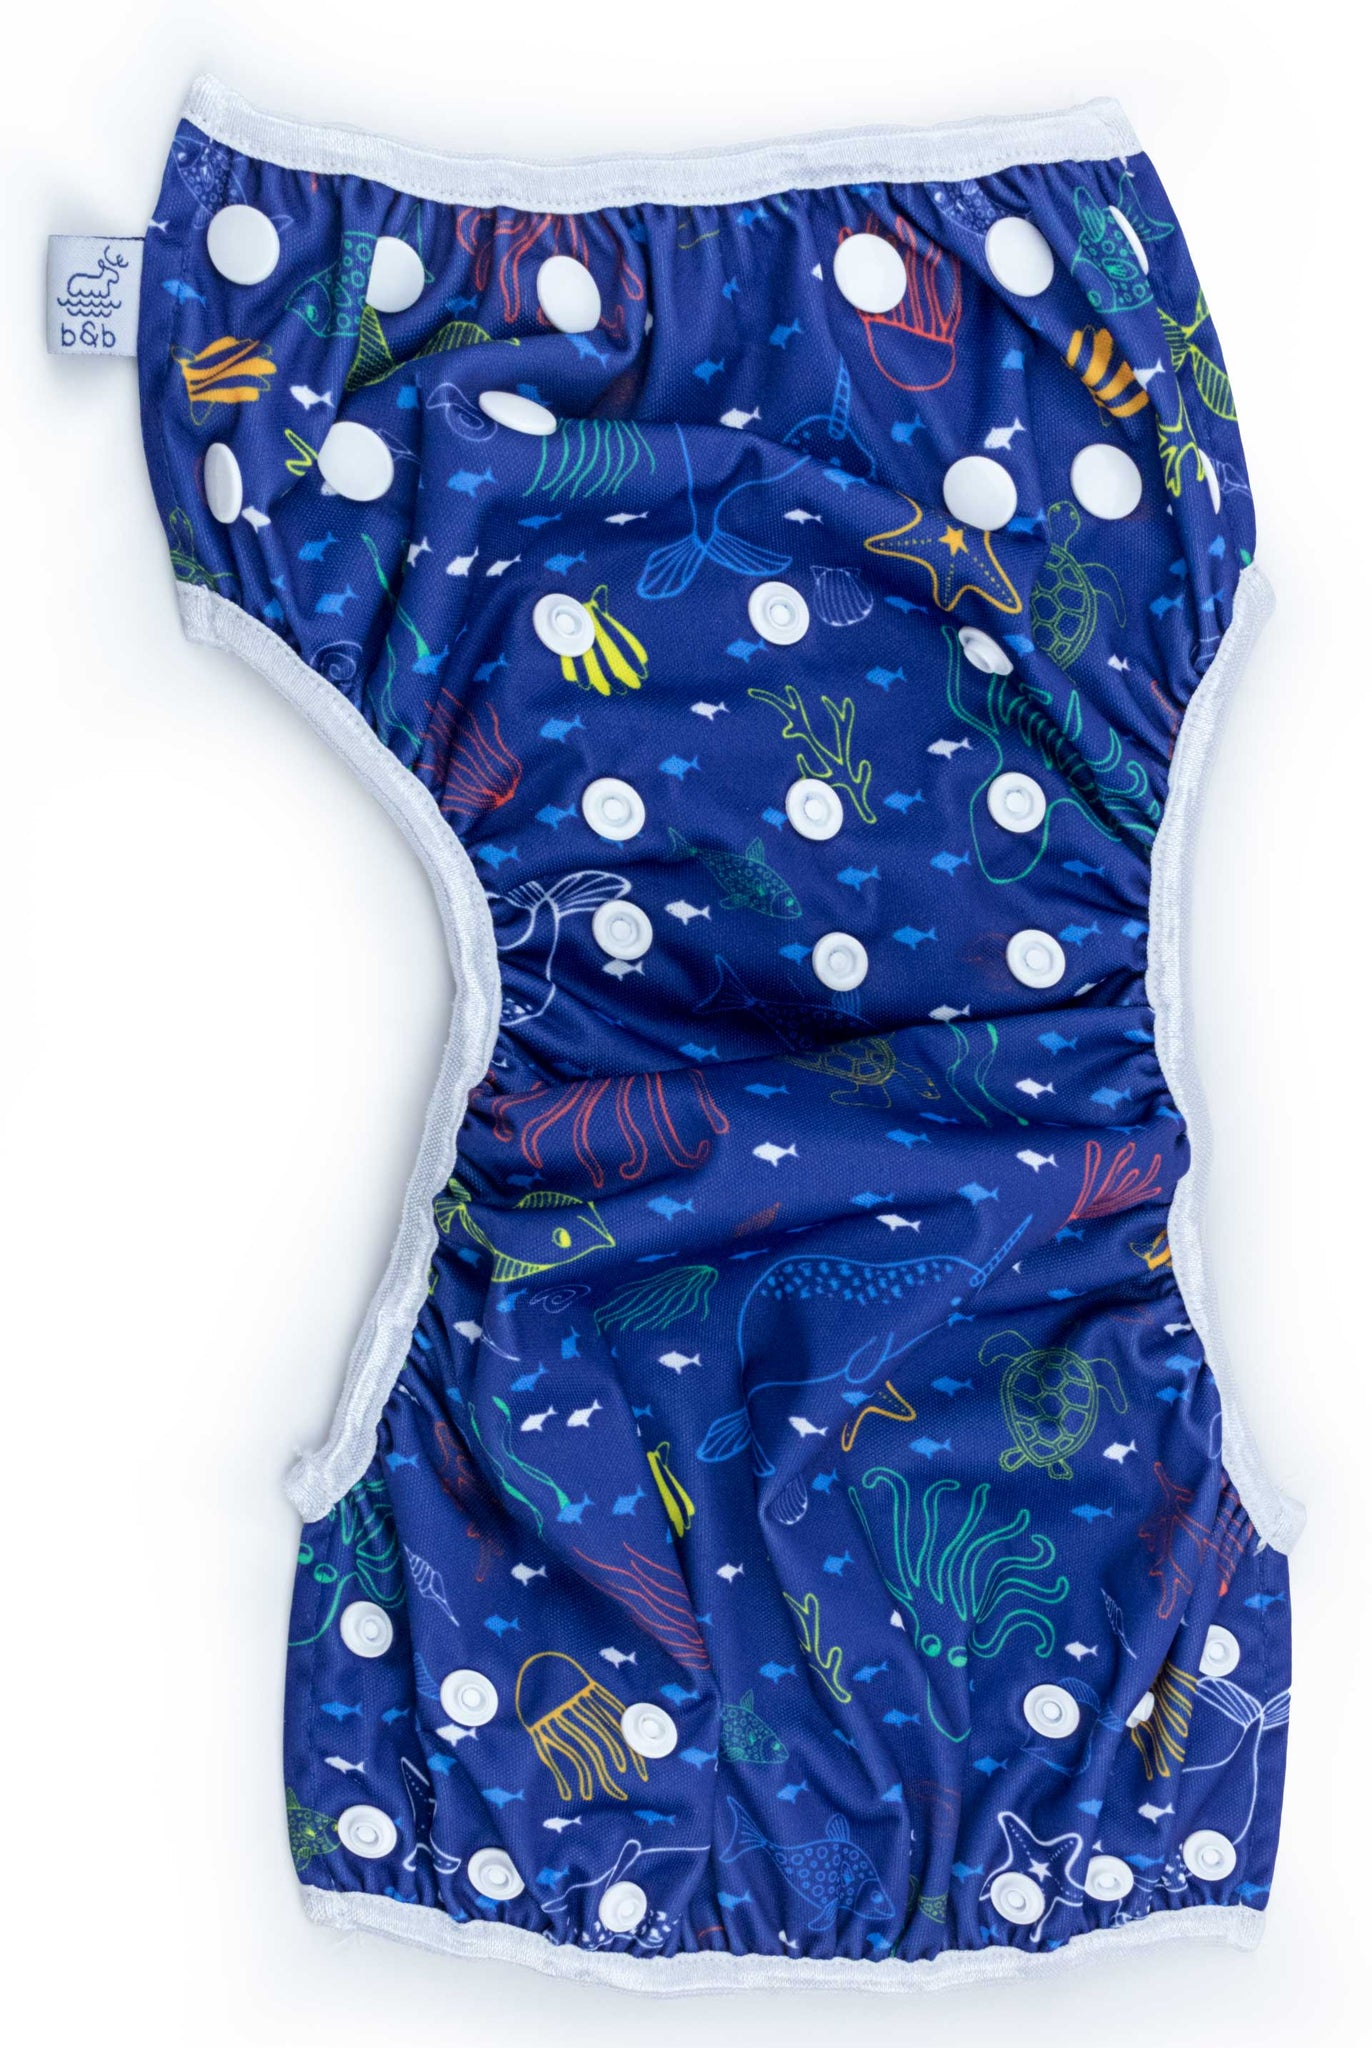 Beau and Belle Littles Swim Diaper, Regular Size, dark blue with outlines of sea creatures, Sea Friends print, unbuttoned and laid flat